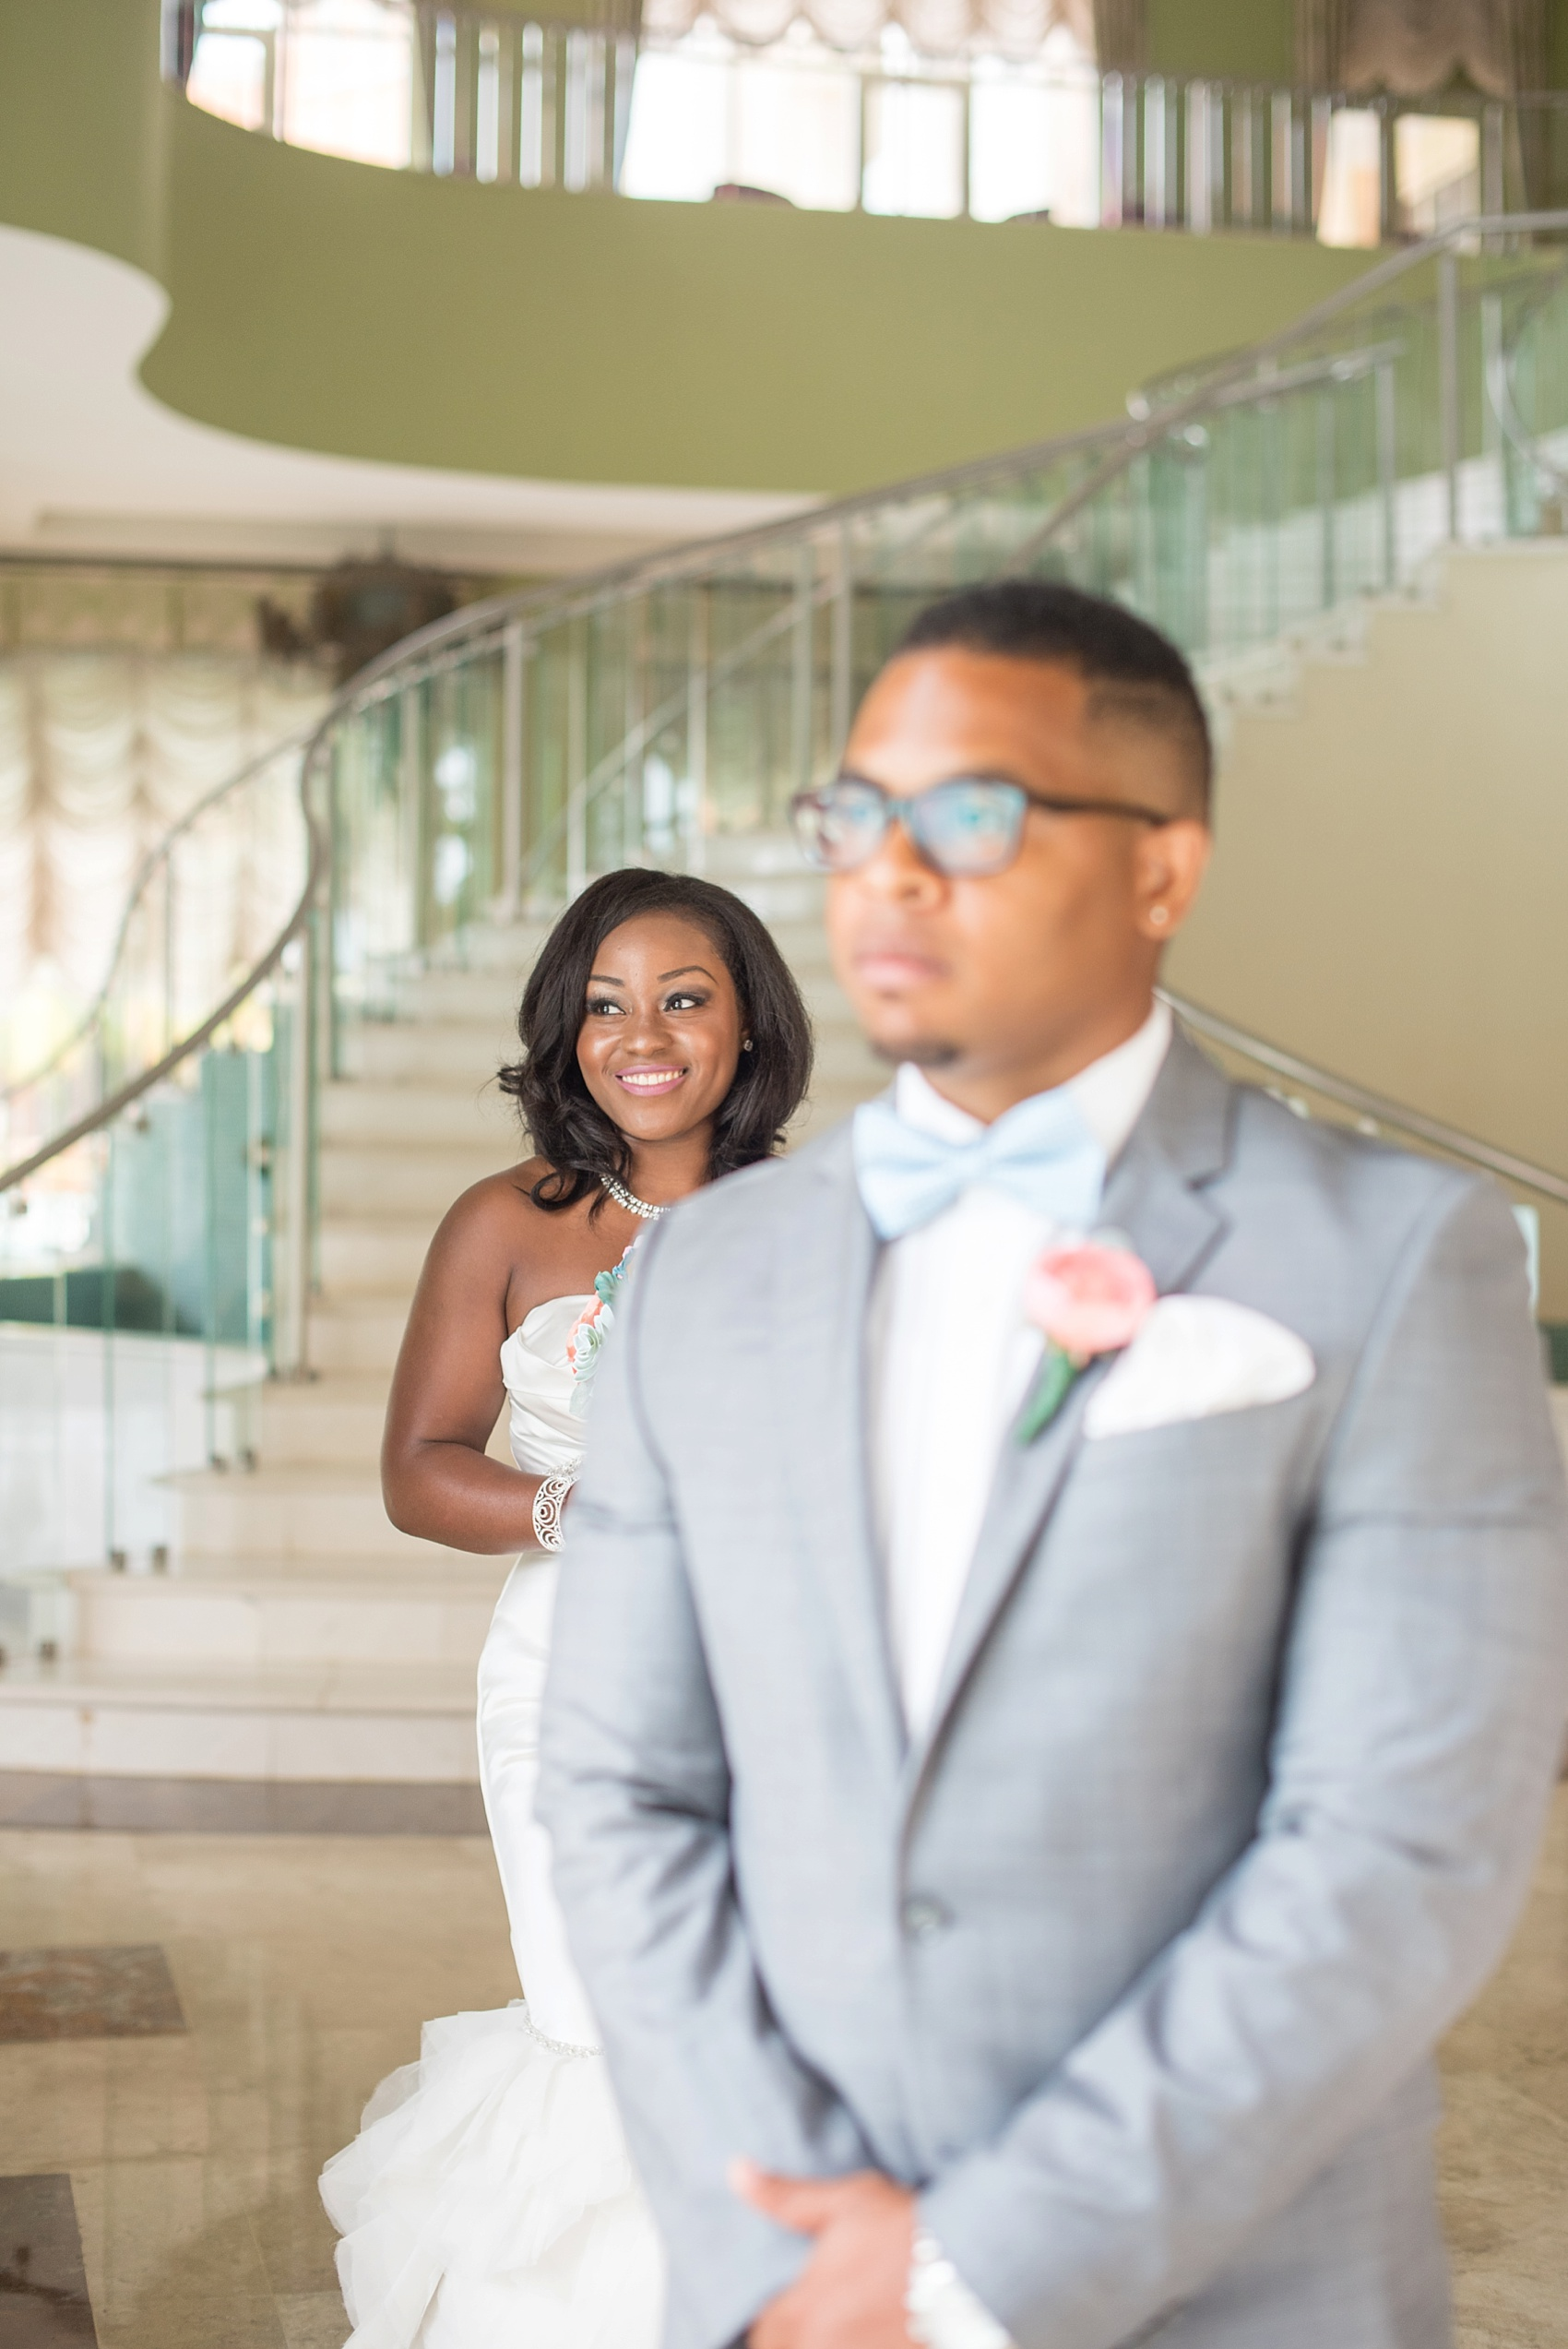 Iberostar Jamaica wedding photos, first look. Images by Mikkel Paige Photography.